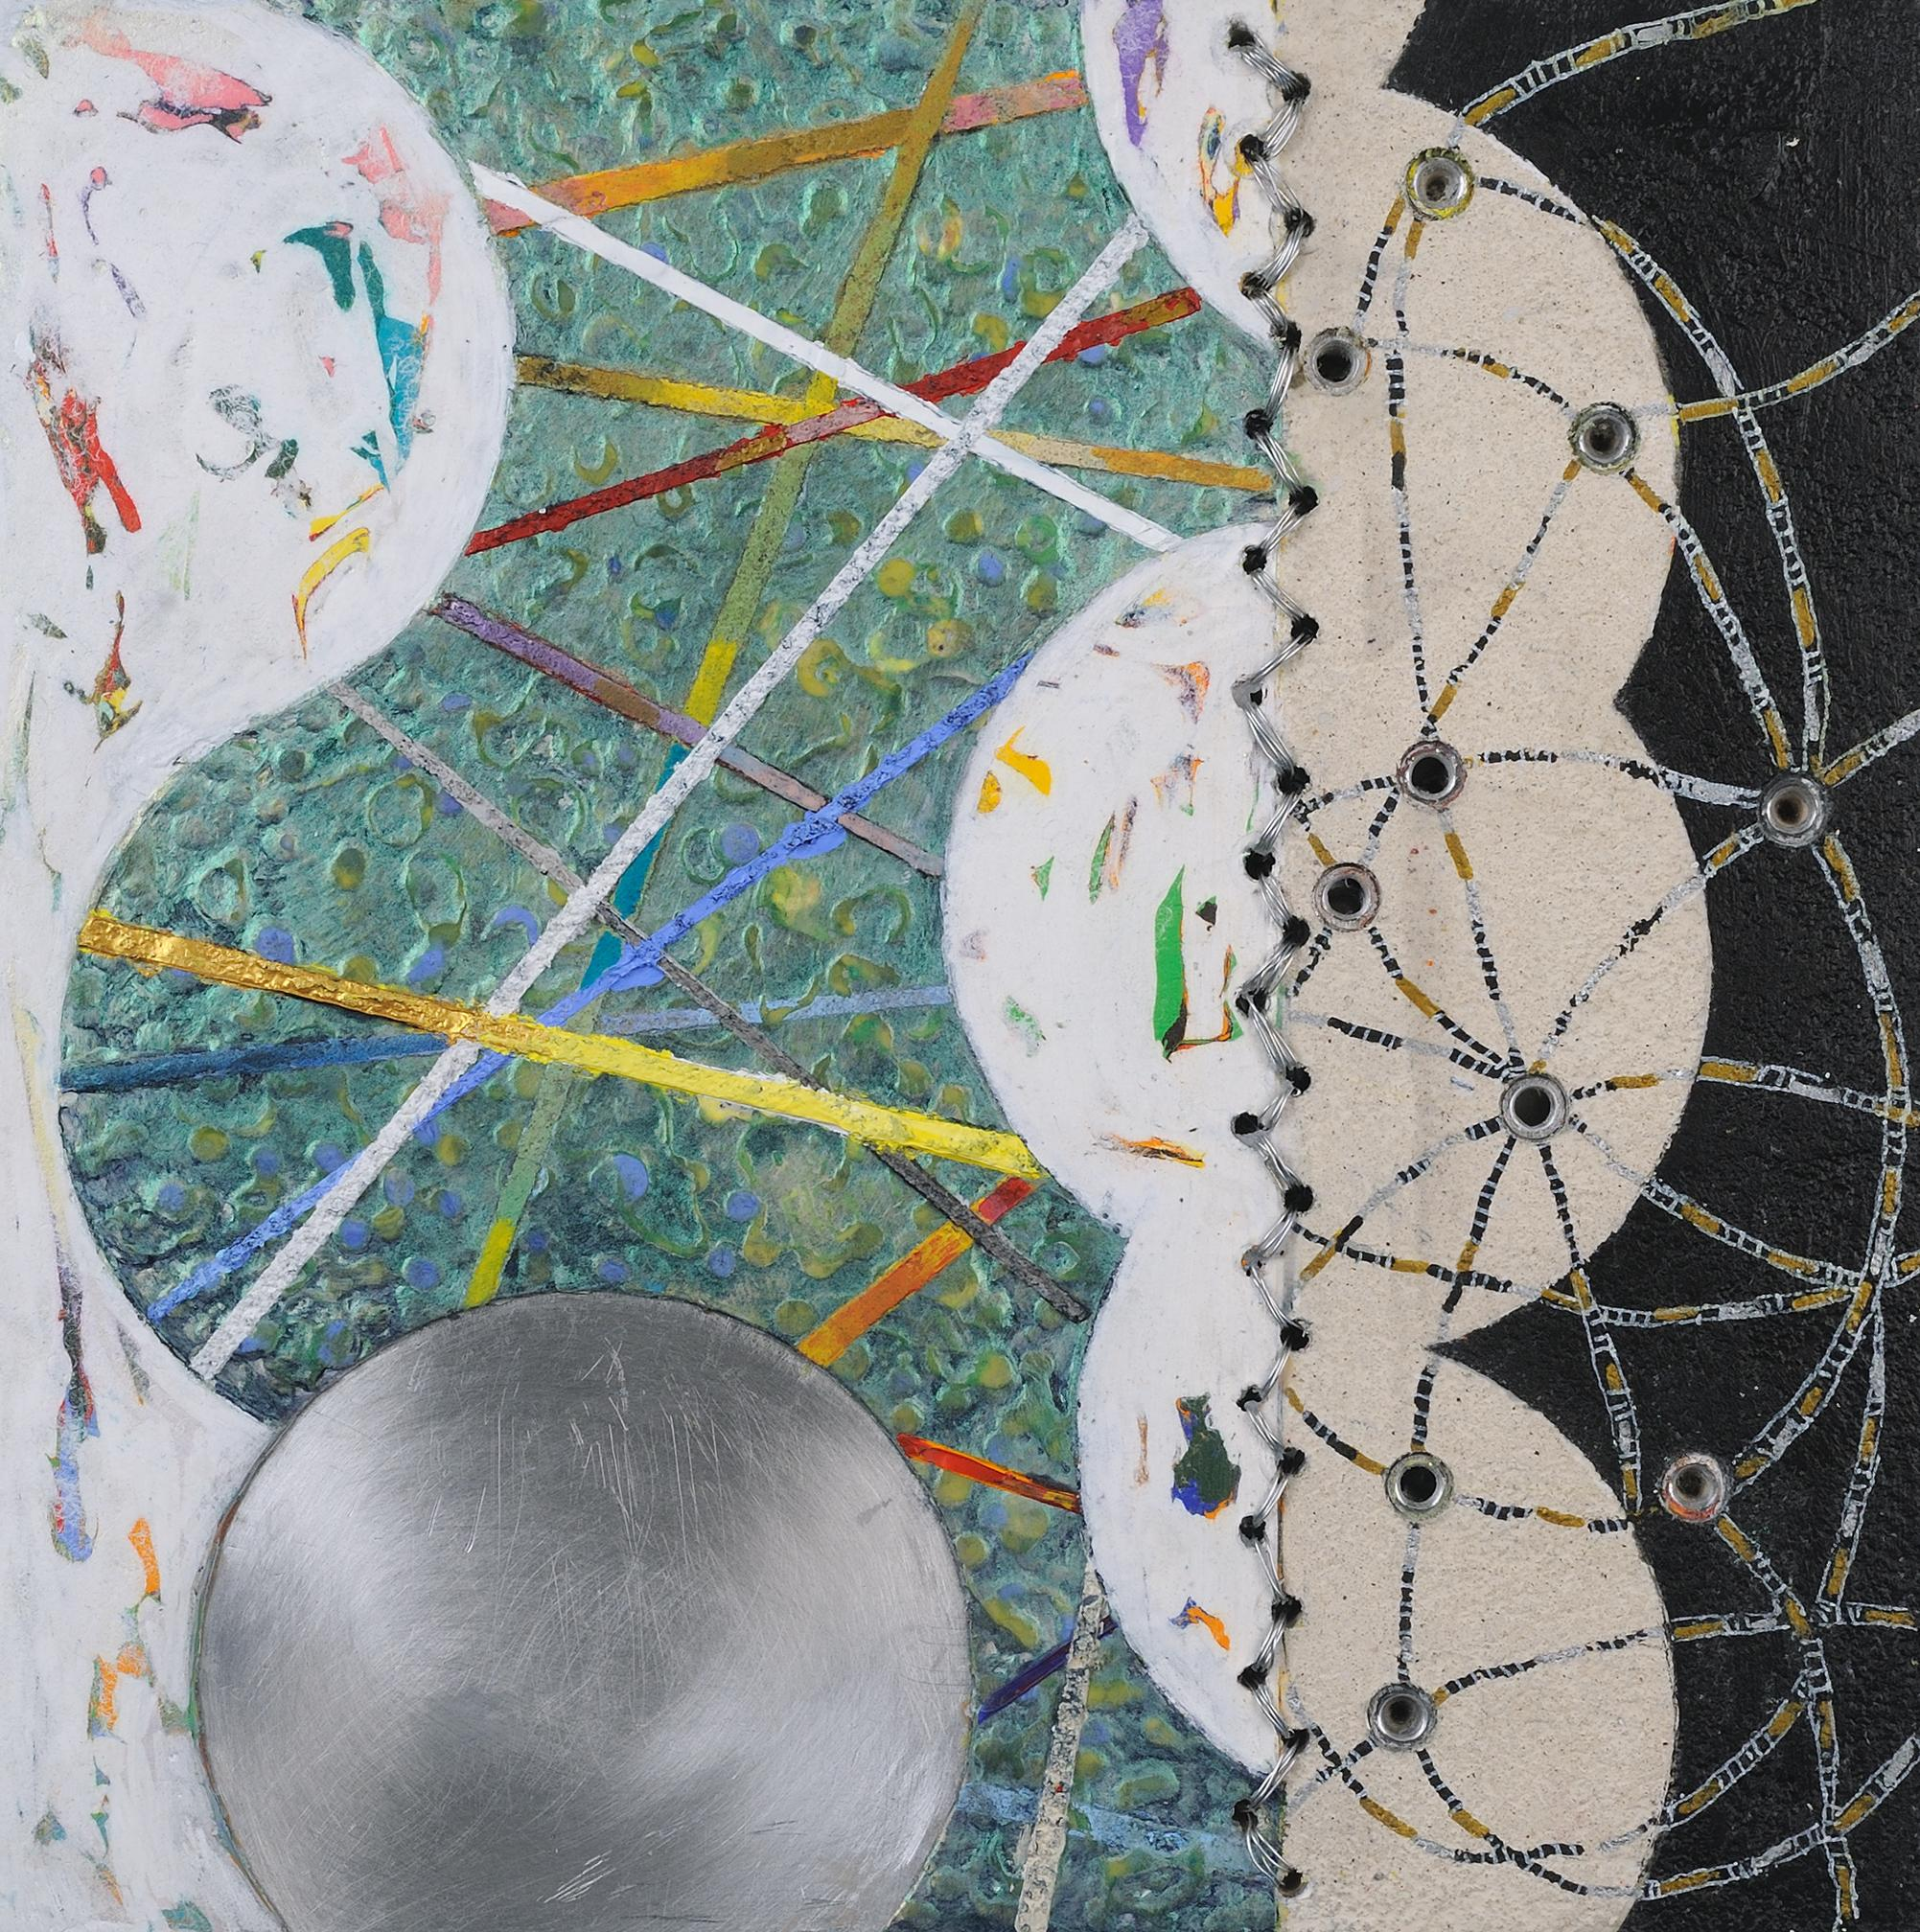 Crossing Lines #9, abstract mixed media painting on aluminum, neutral tones